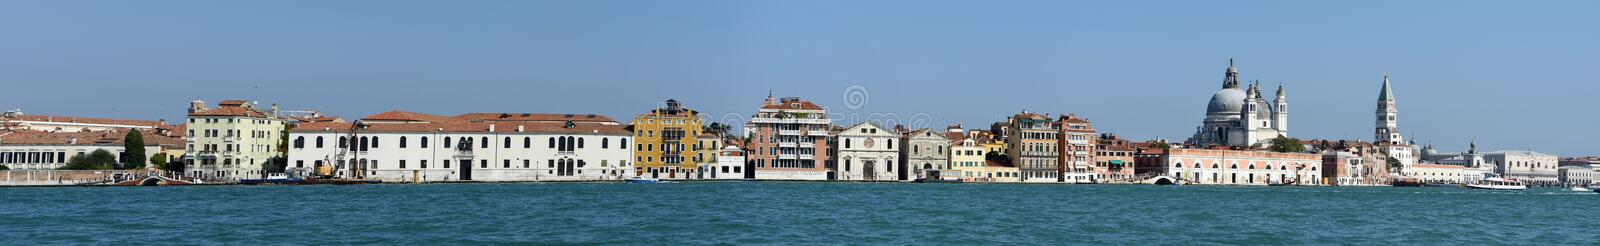 Panoramic View of Venice from Giudecca royalty free stock images